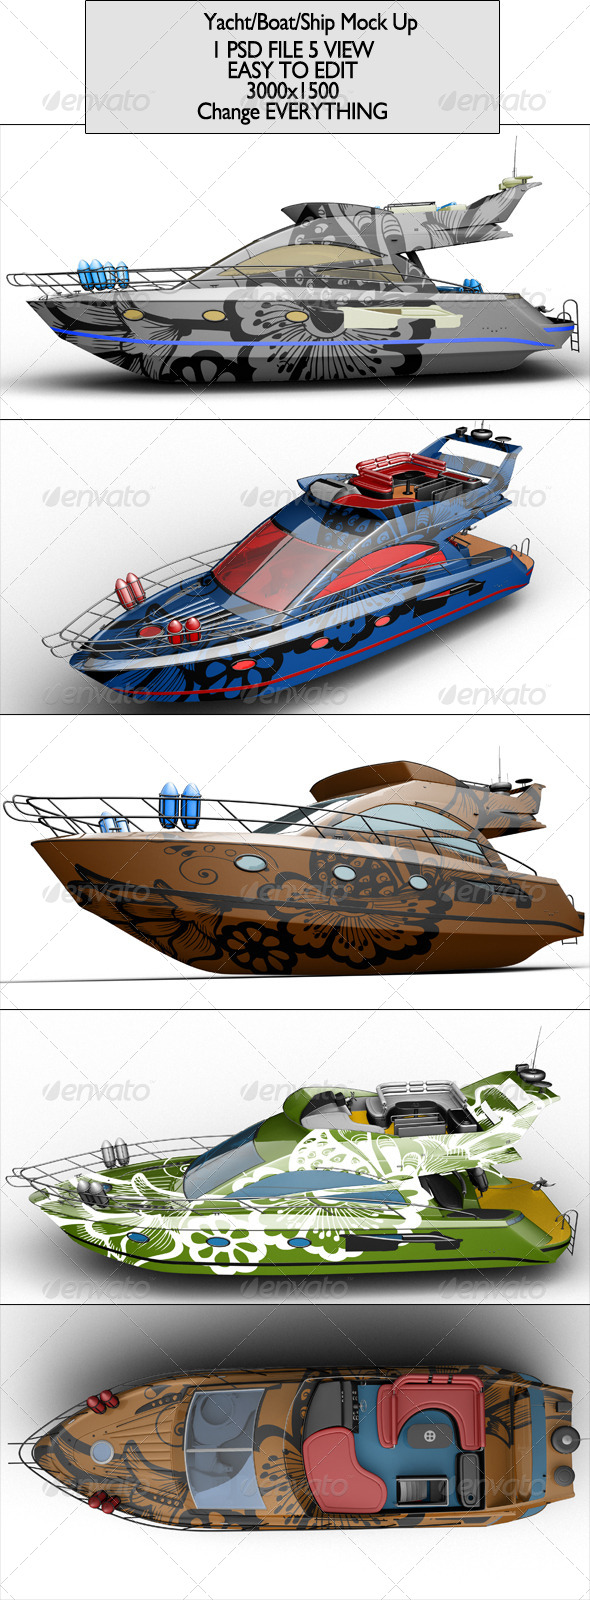 Yacht/Boat/Ship Mock Up - Product Mock-Ups Graphics